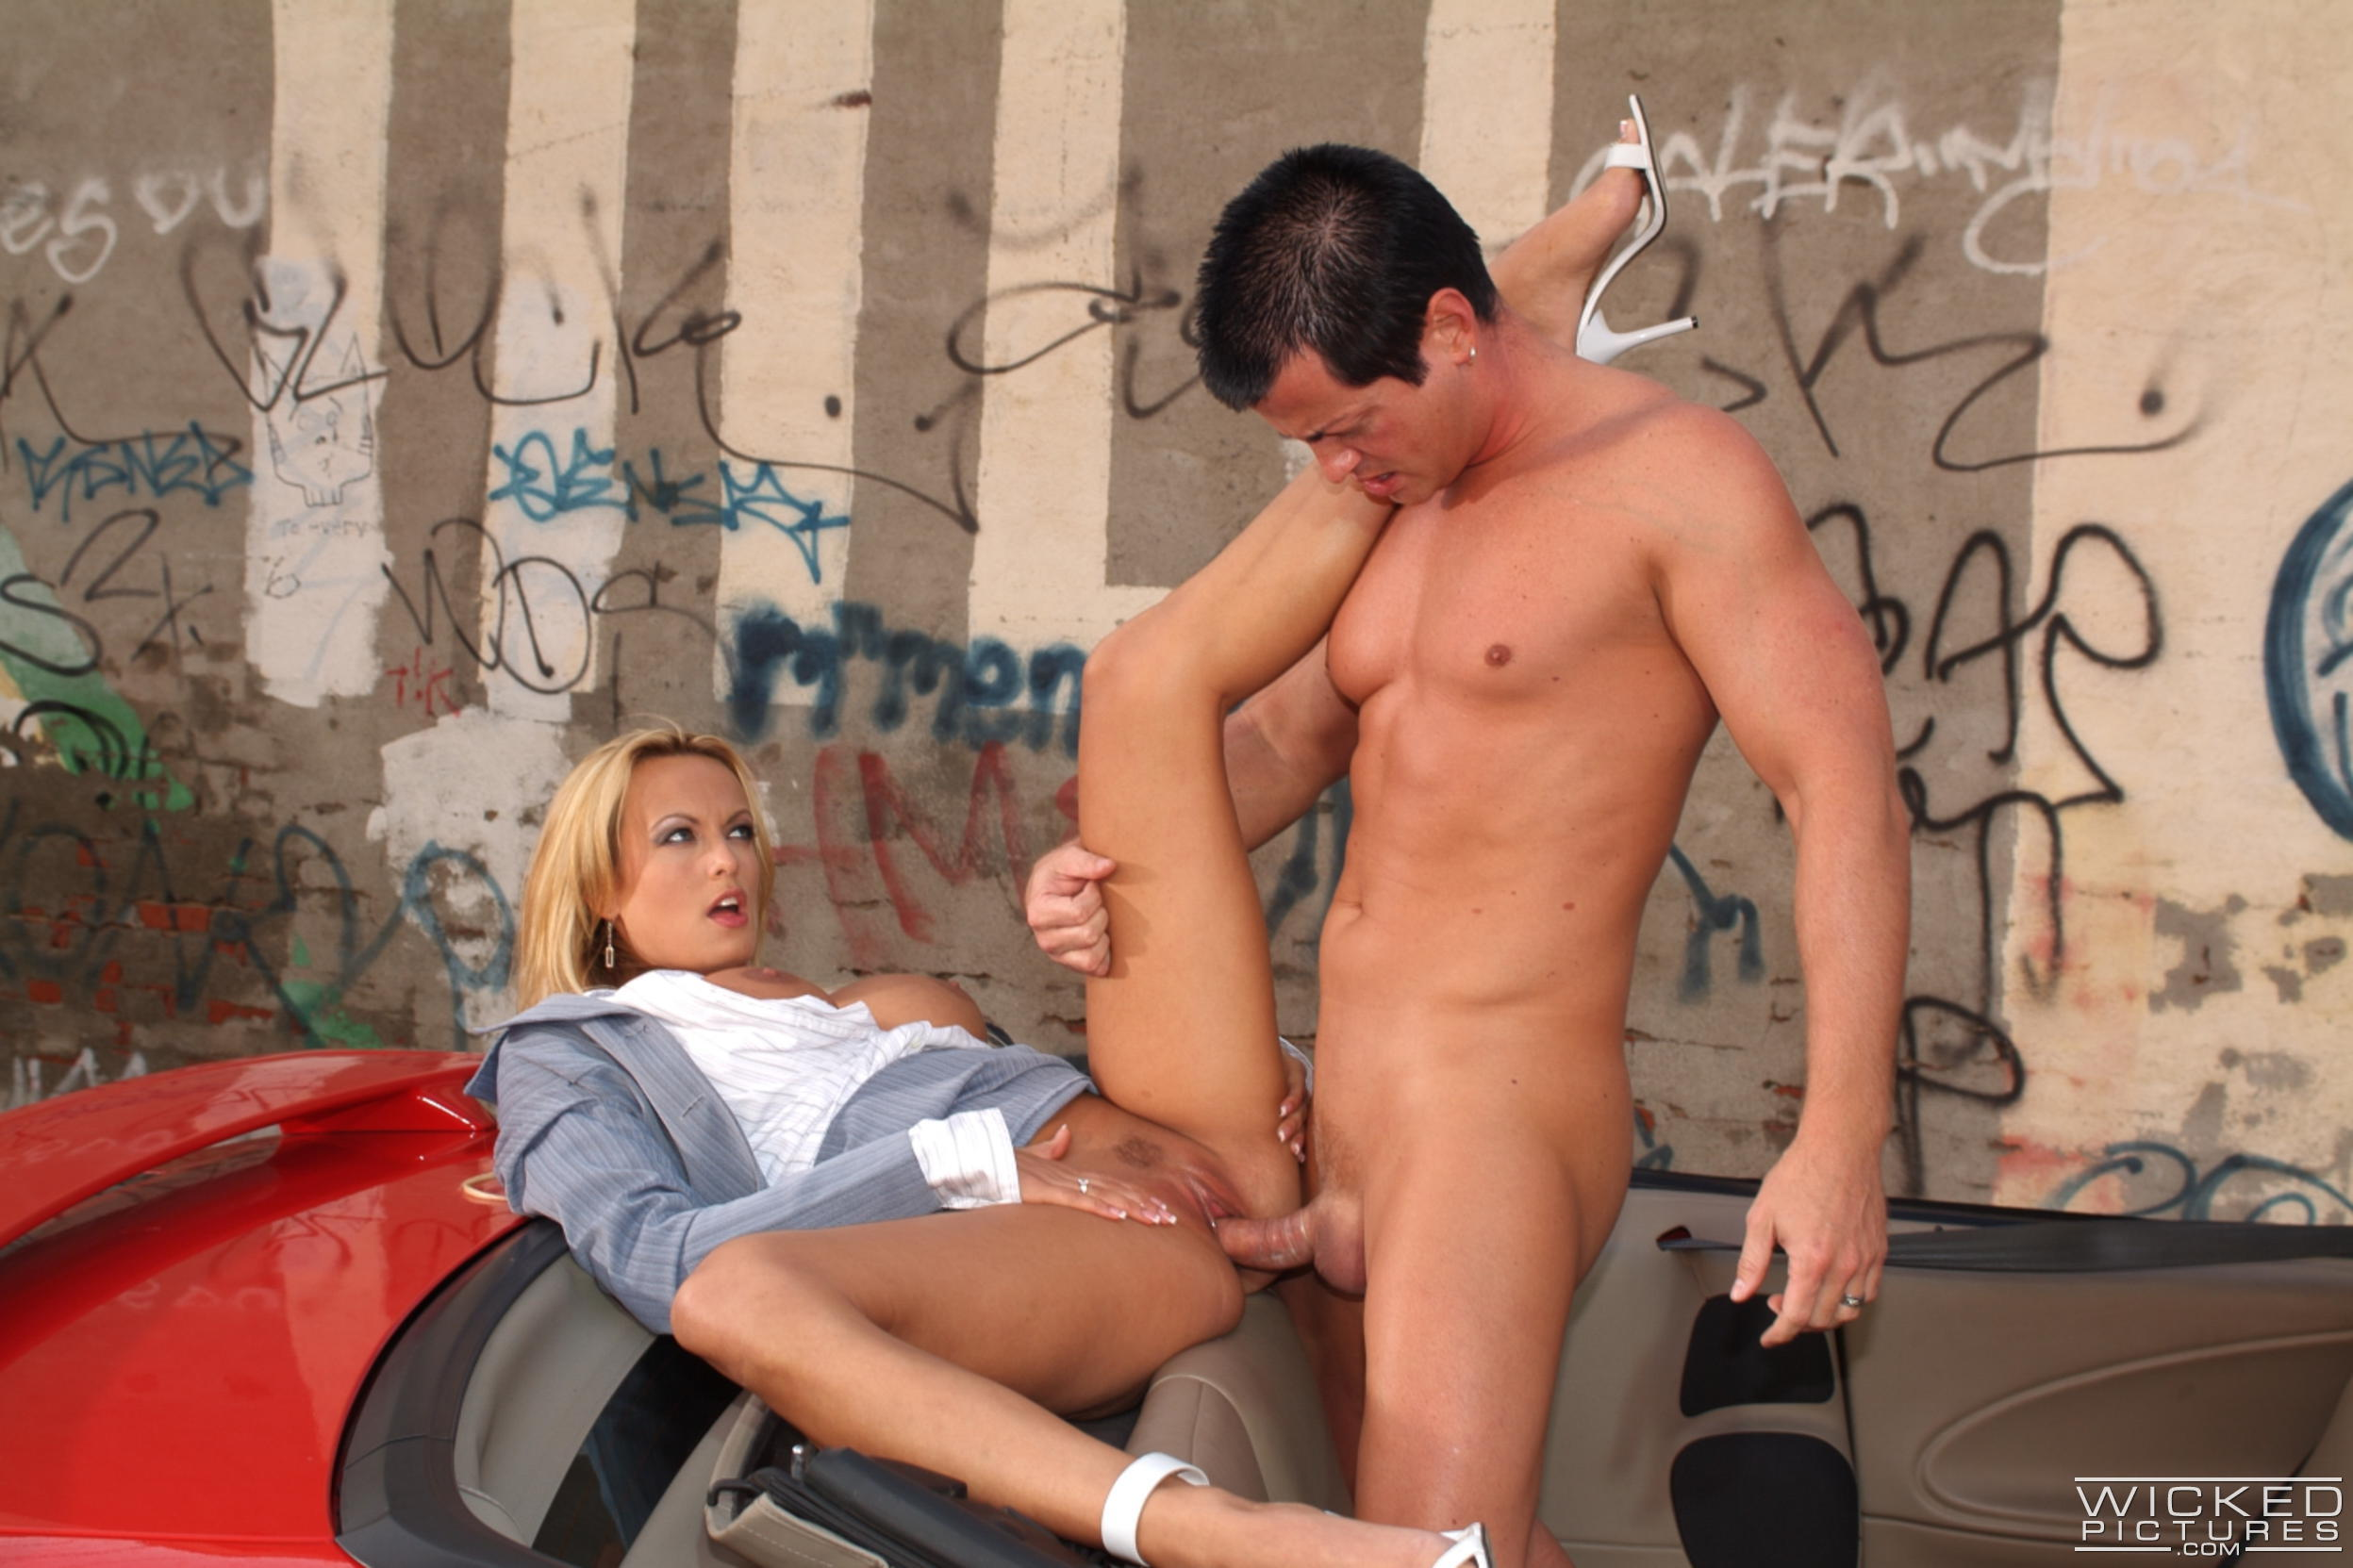 Wicked 'The Closer Scene 2' starring Stormy Daniels (Photo 33)